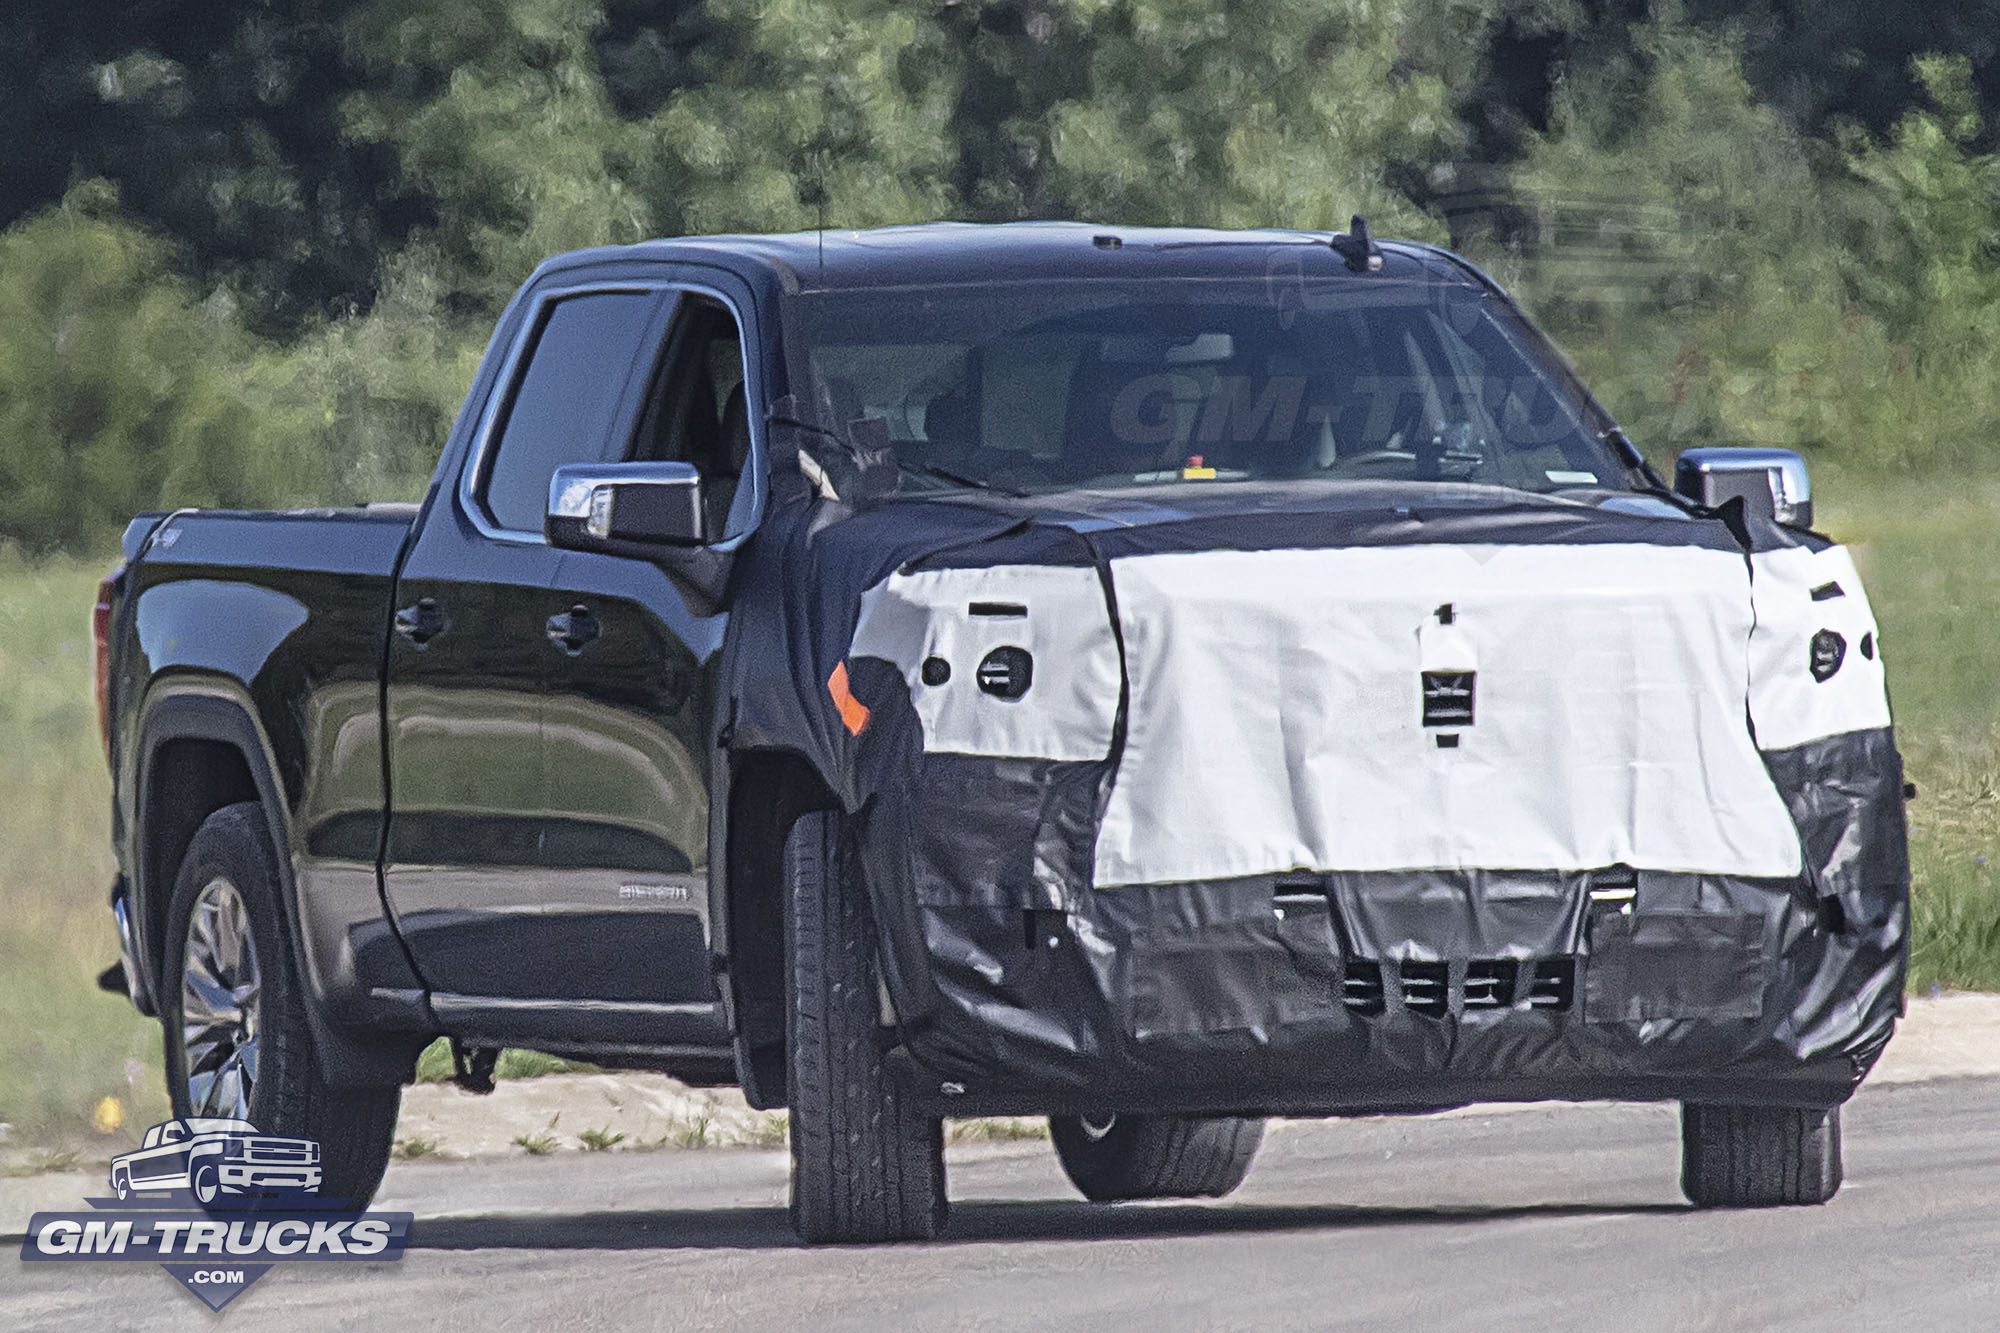 First Look: Facelifted 2022 GMC Sierra Captured!